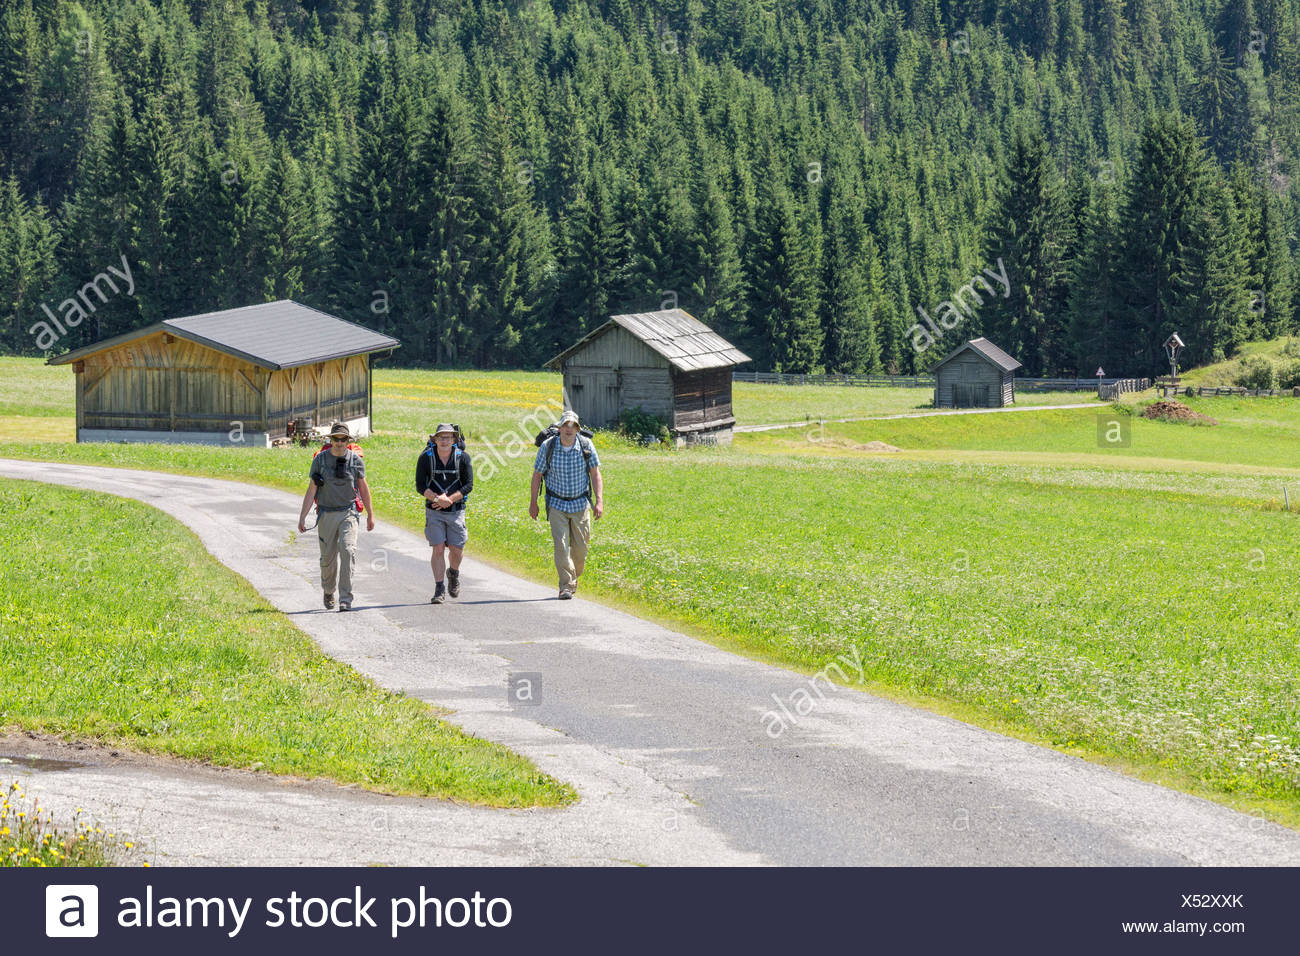 Hikers on an itinerary among the typical barns of the gail valley, Obertilliach, Tiroler Gailtal, East Tyrol, Tyrol, Austria - Stock Image